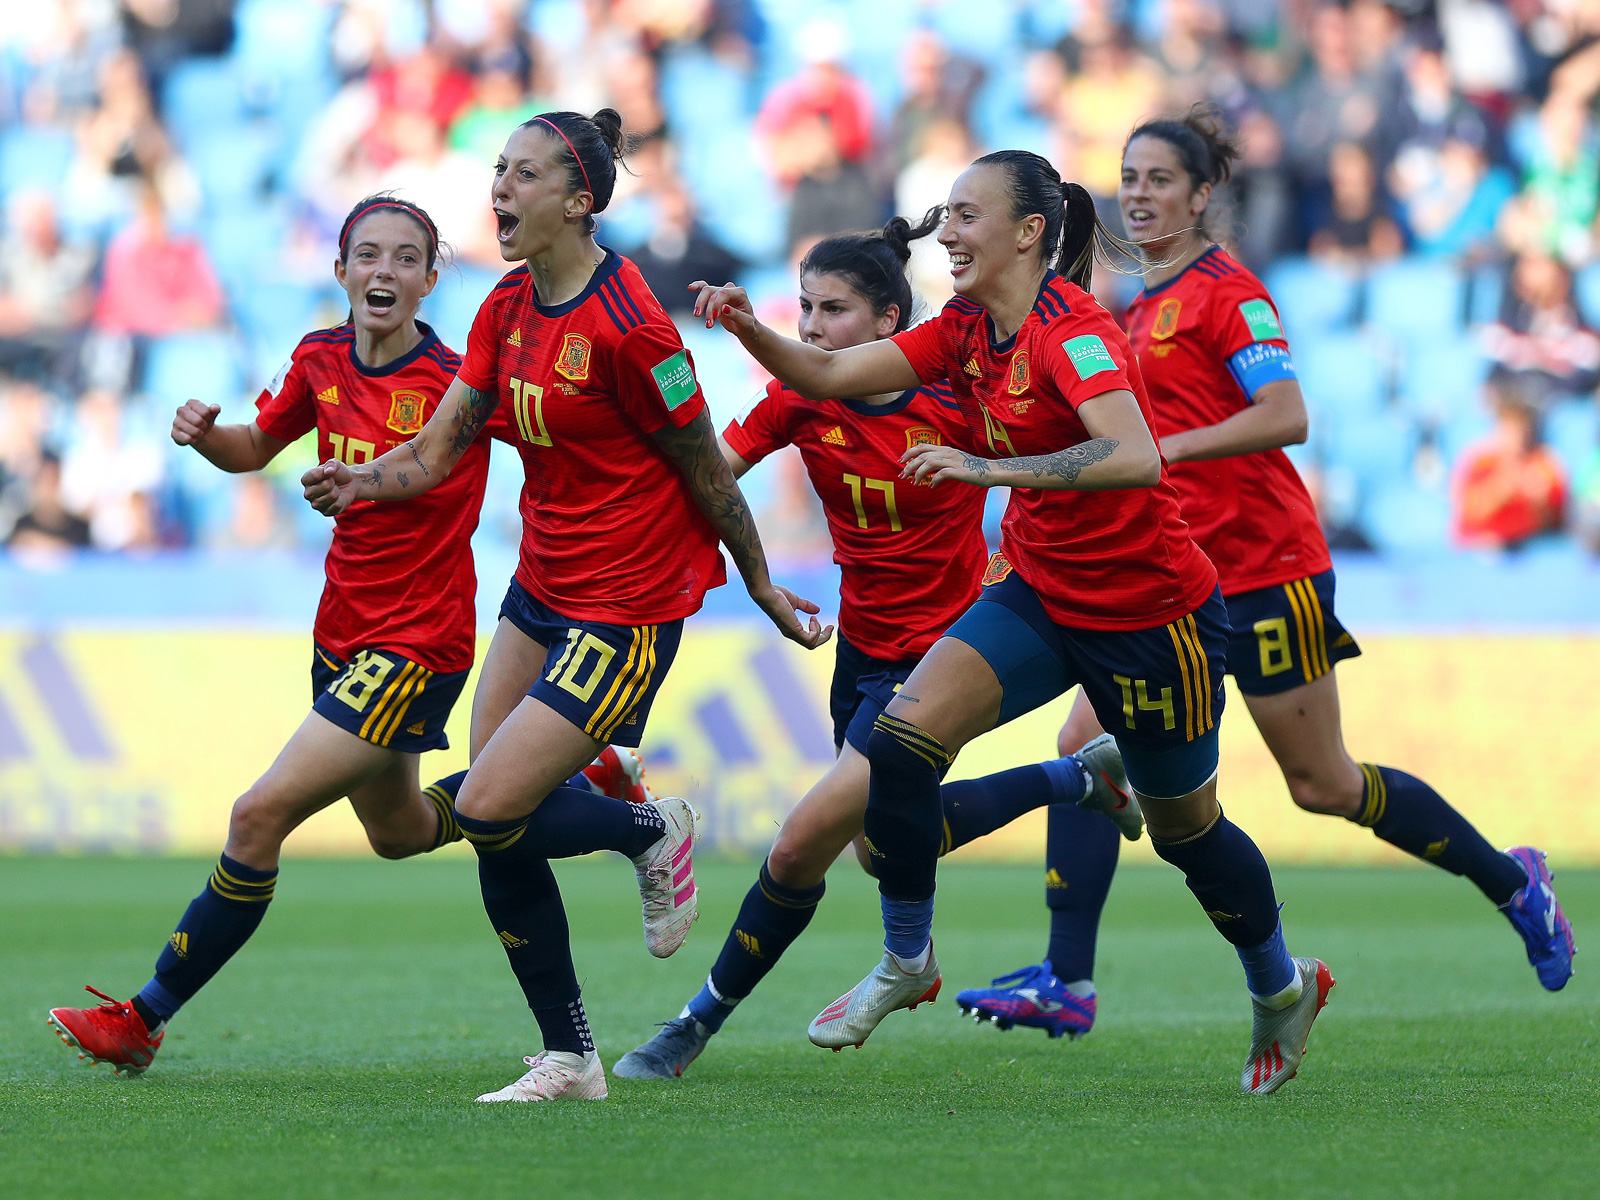 Spain faces the USA in the Women's World Cup round of 16